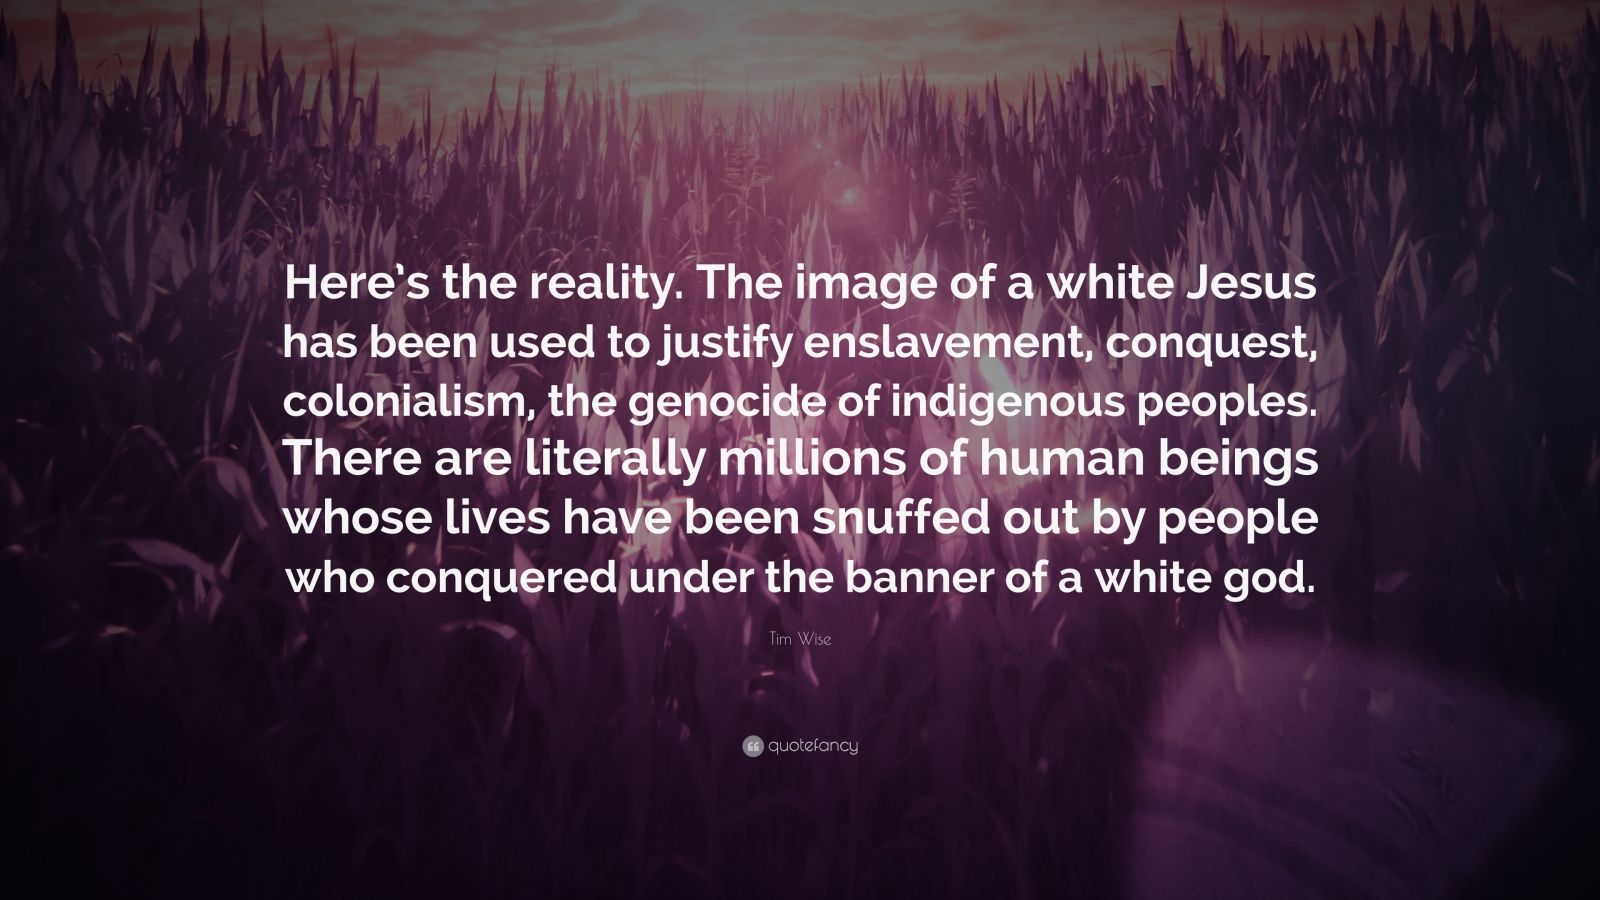 "Tim Wise Quote: ""Here's the reality. The image of a white Jesus has been used to justify enslavement, conquest, colonialism, the genocide of indigenous peoples. There are literally millions of human beings whose lives have been snuffed out by people who conquered under the banner of a white god."""